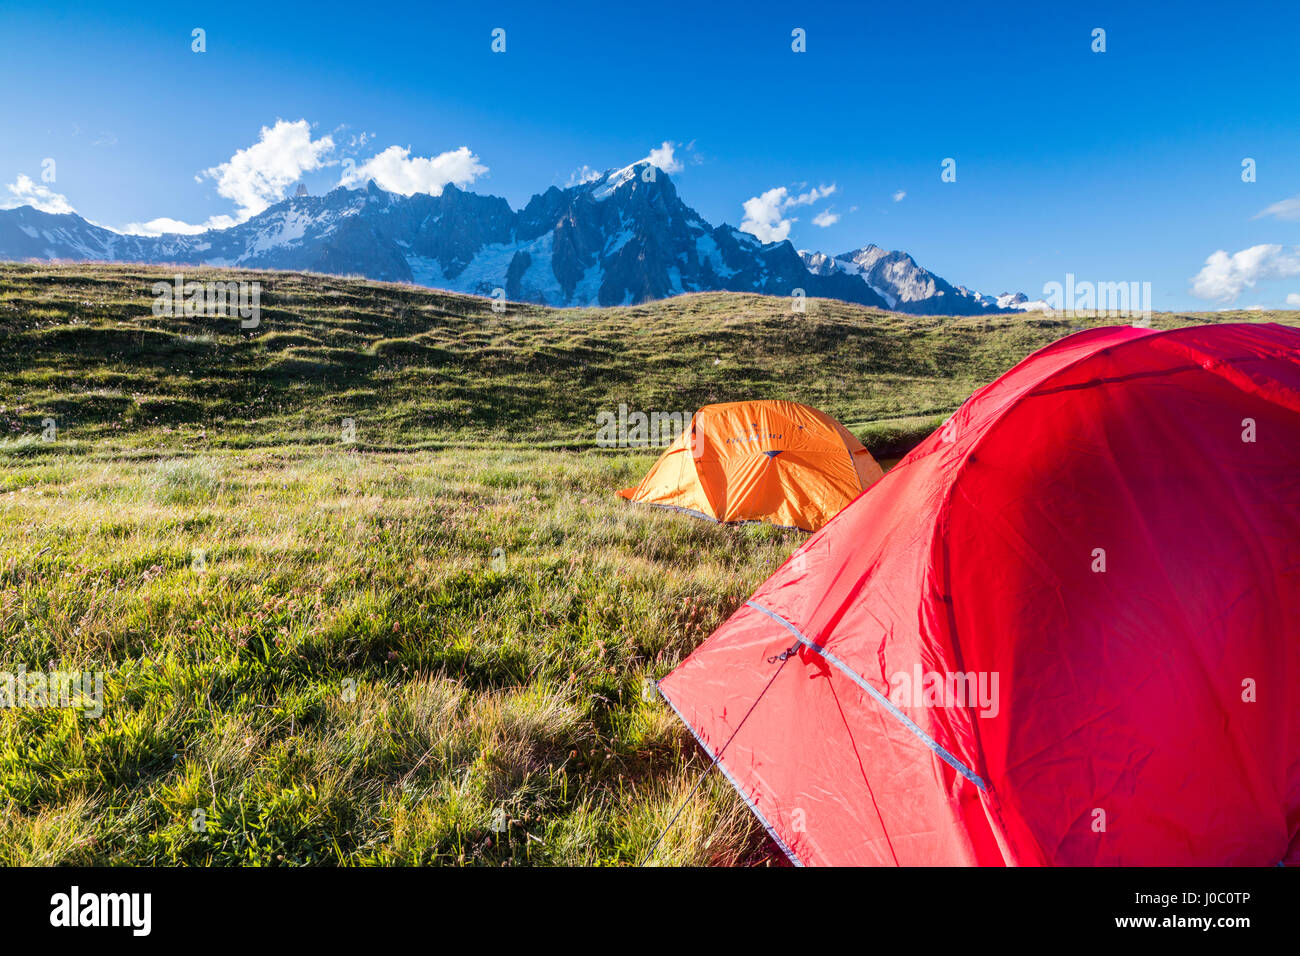 Camping tents in the green meadows with Mont De La Saxe in the background, Courmayeur, Aosta Valley, Italy - Stock Image